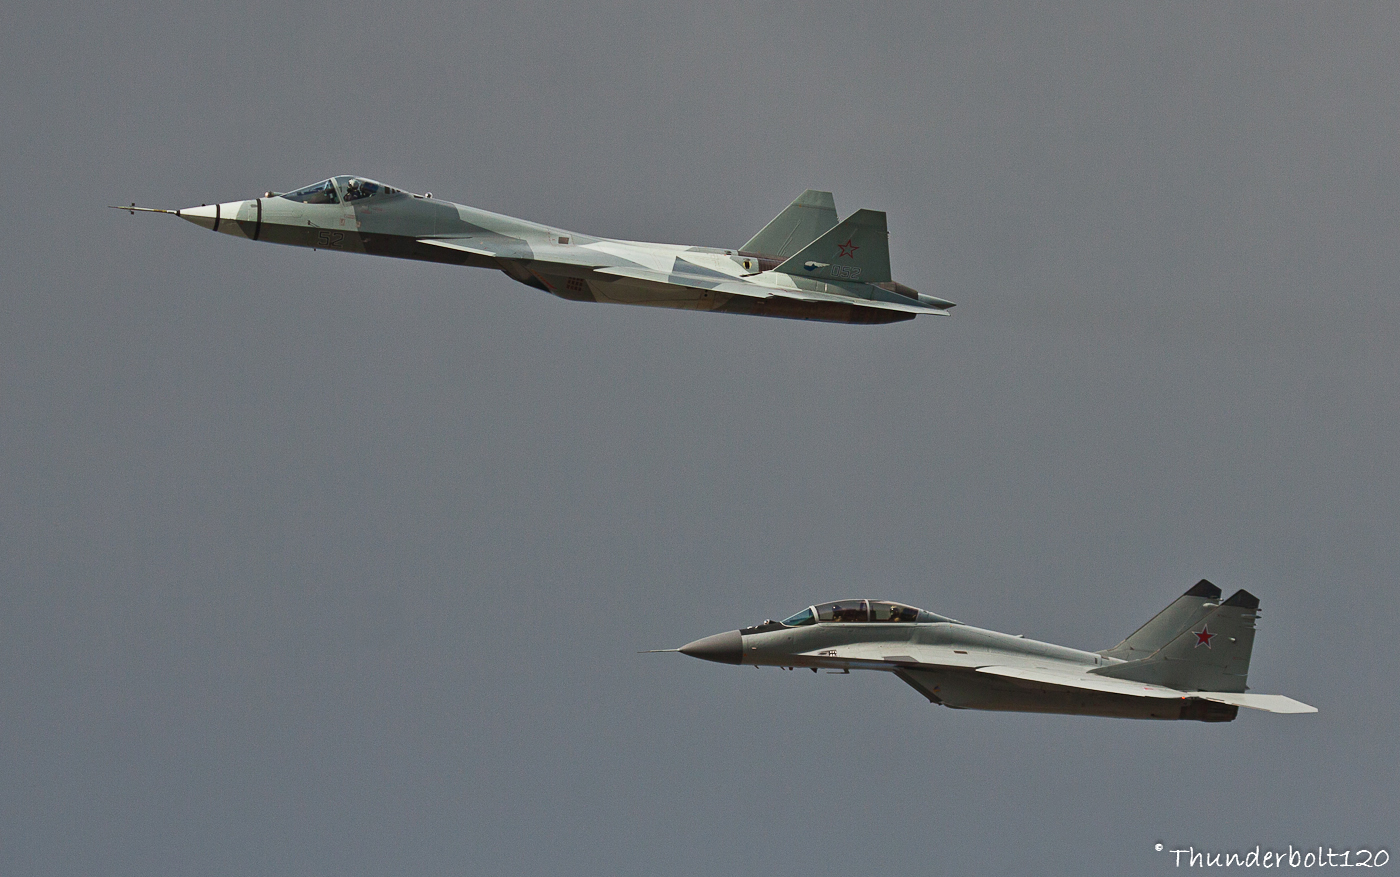 T-50 and Mig-29M2